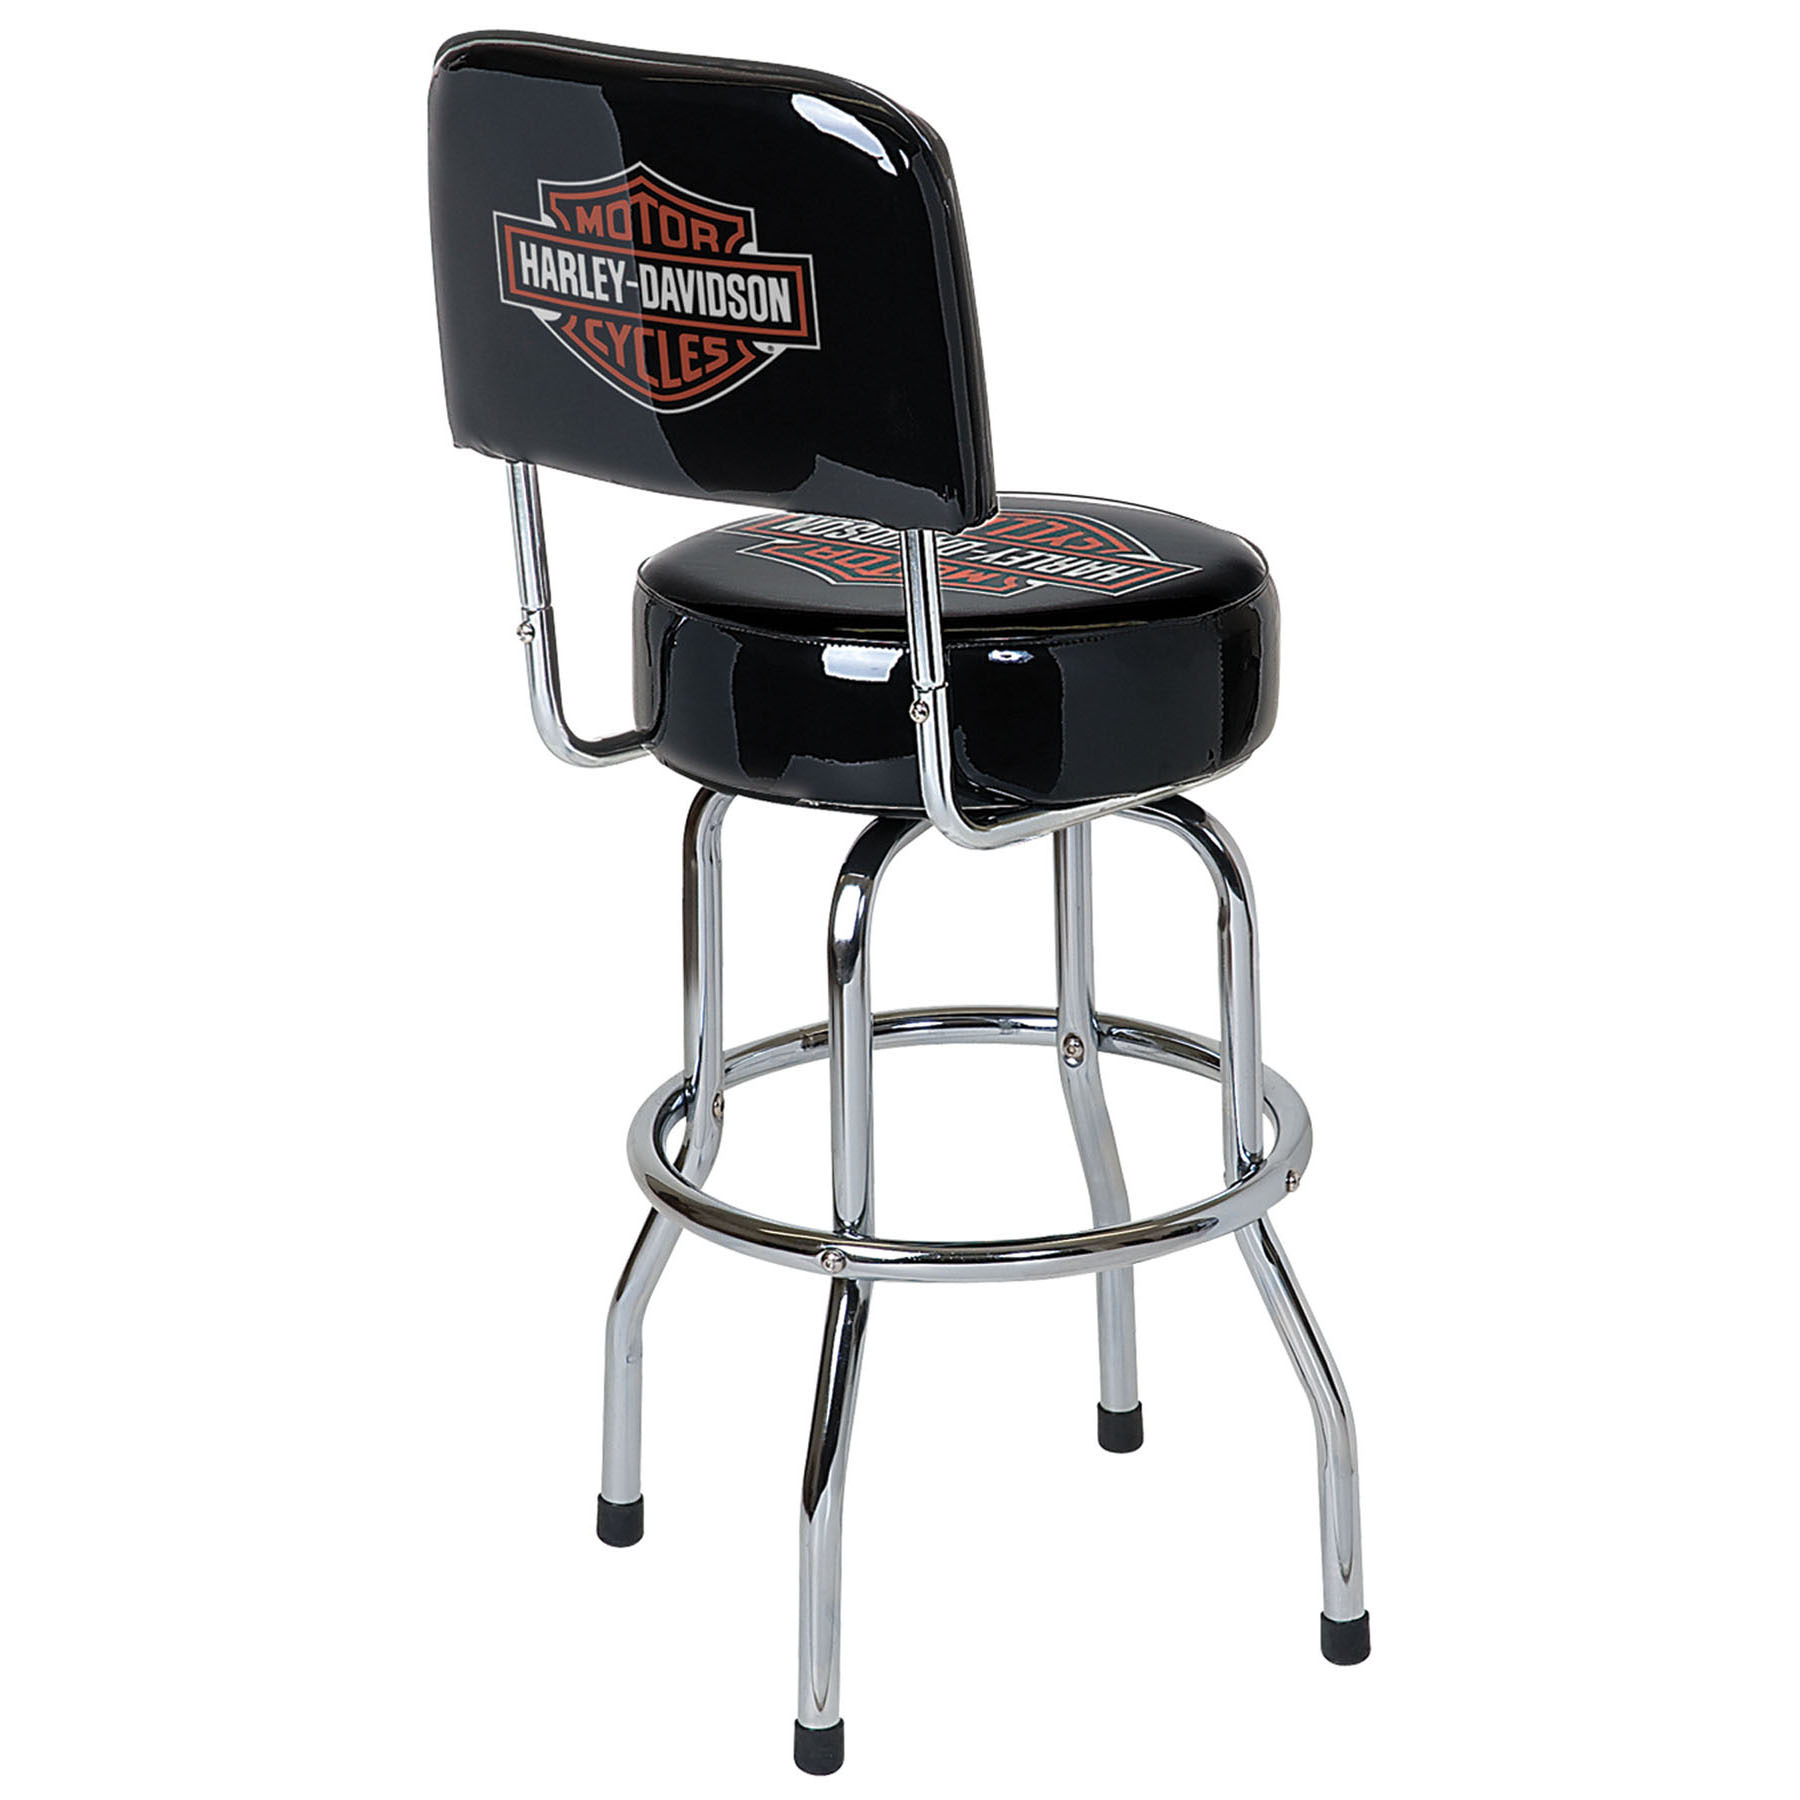 hv stool bar harley of table tilt chairs and davidson havana furniture pastel awesome ws stools barstool swivel elegant pub